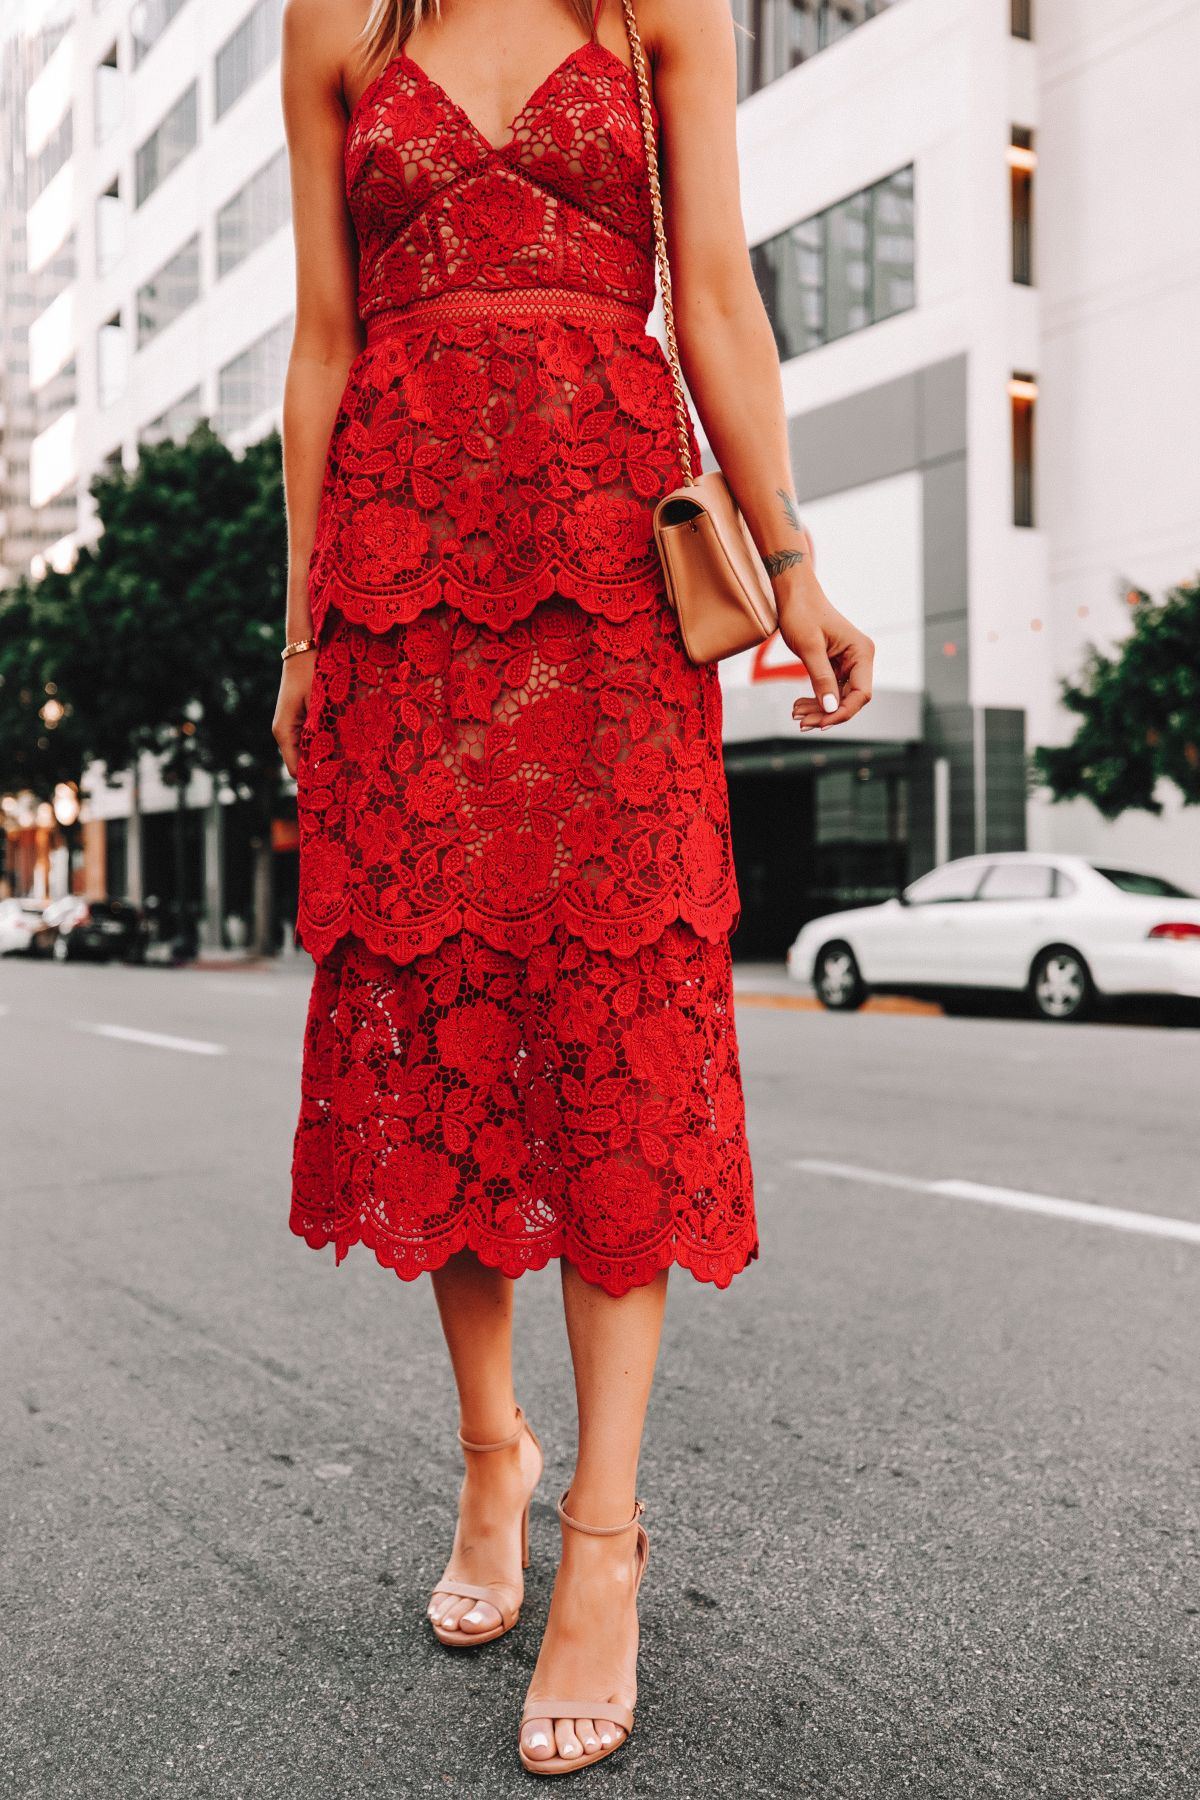 Spring Wedding Guest Spring Wedding What To Wear To A Wedding Cocktail Dress In 2020 Cocktail Dress Wedding Spring Wedding Guest Dress Cocktail Dress Wedding Guest